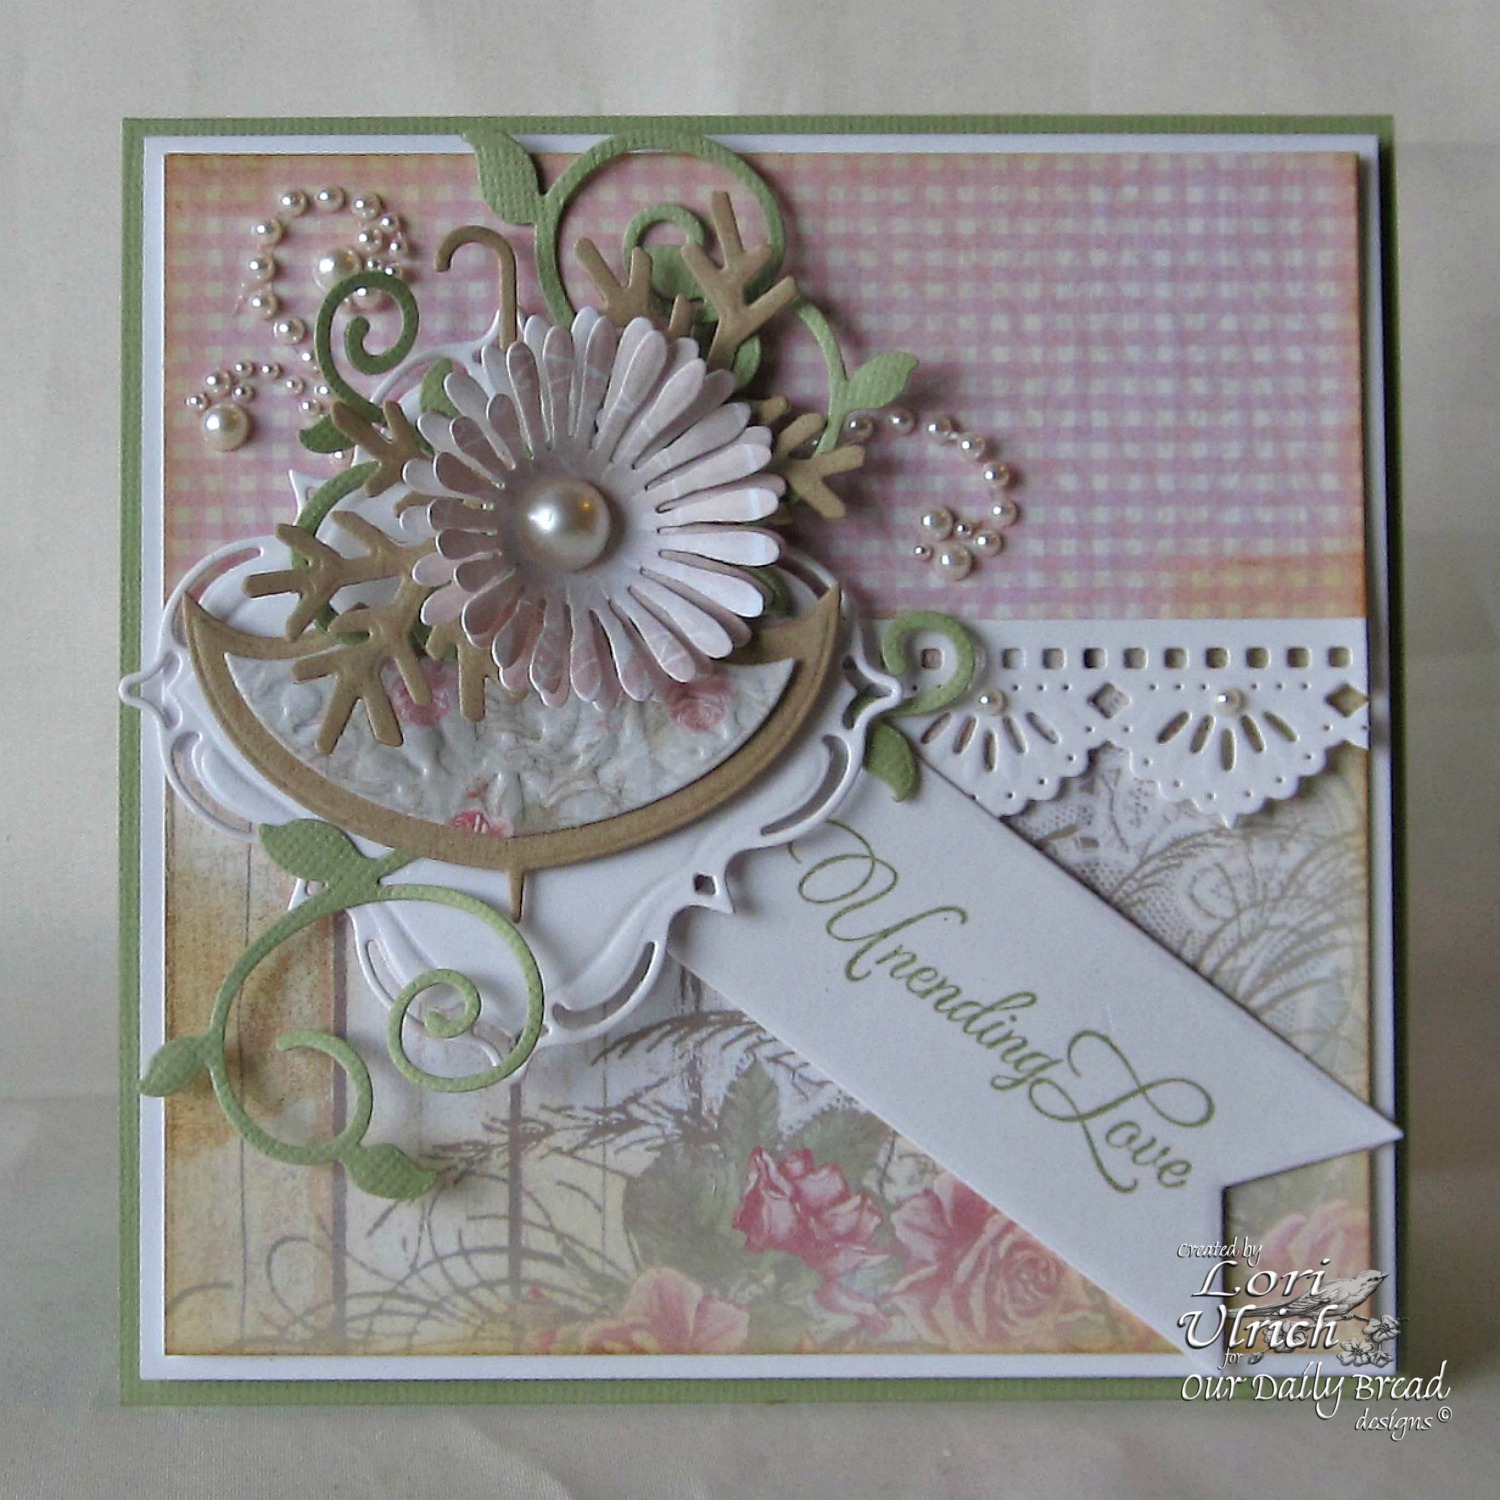 Stamps - Our Daily Bread Designs How Sweet the Sound, ODBD Custom Dies: Lacey Layered Squares, Fancy Foliage, Pennants, Asters and Leaves, Beautiful Borders, ODBD Shabby Rose Paper Collection